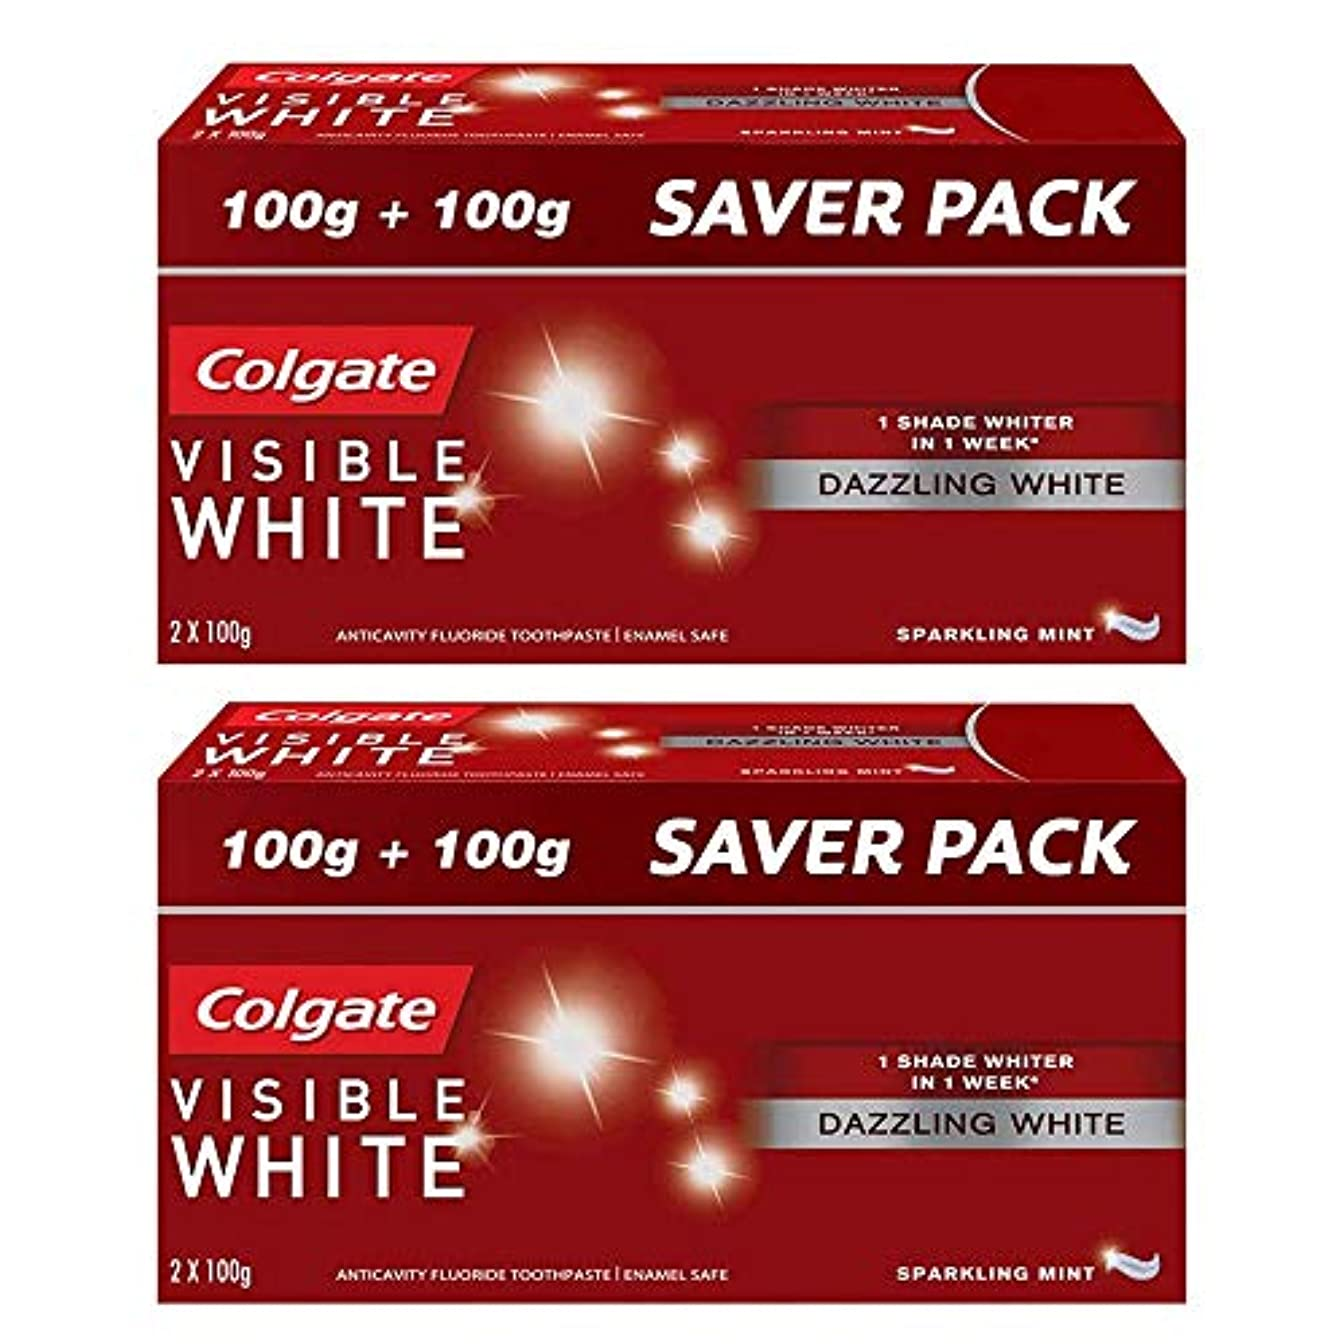 出版器官ドラッグColgate Visible White Dazzling White Toothpaste, Sparkling Mint - 200gm (Pack of 2)